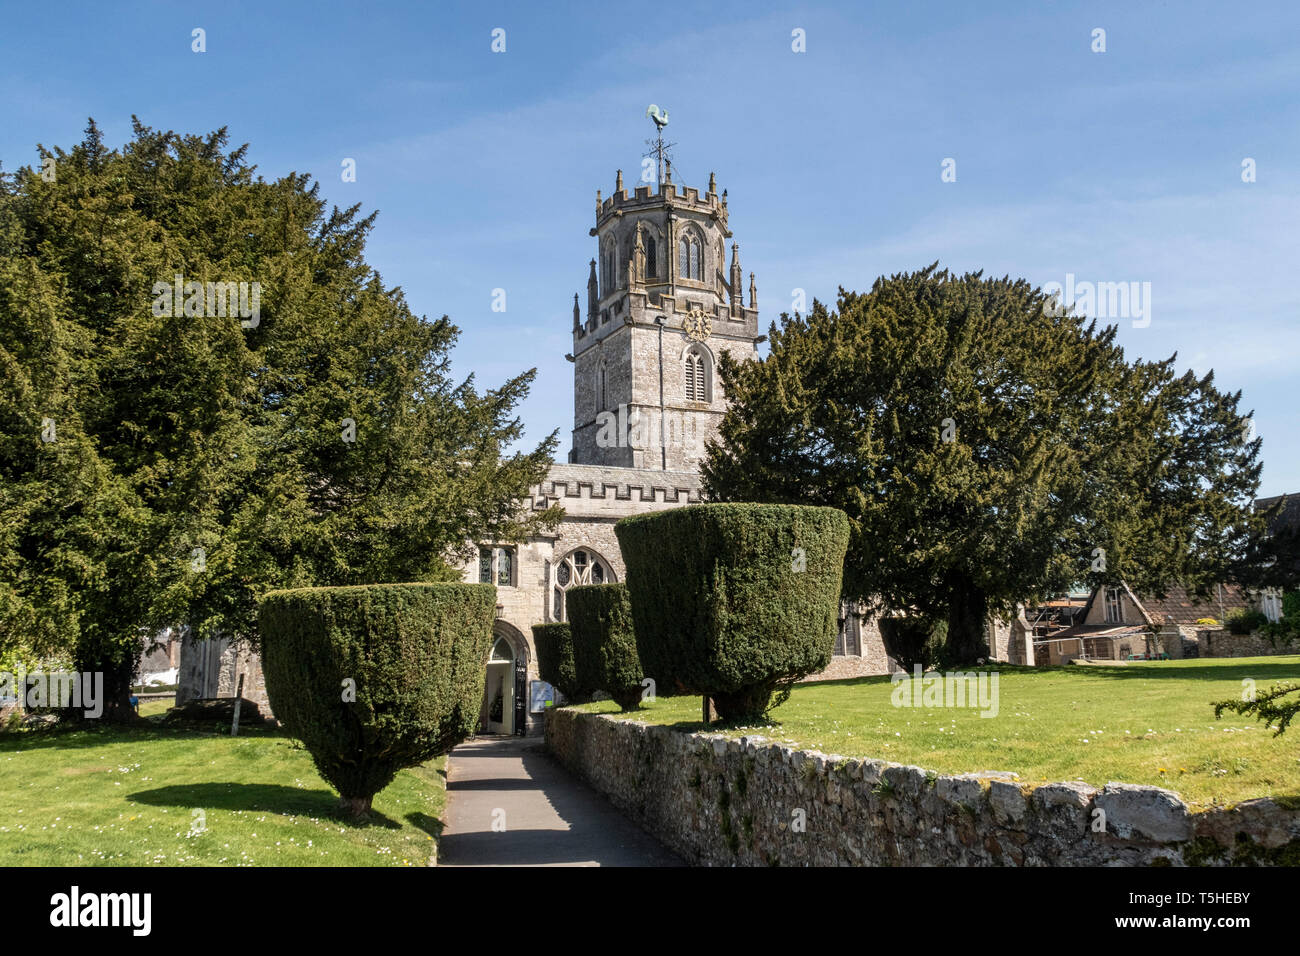 The church of St Andrew, Colyton, Devon. with clipped yew tress in the garden. - Stock Image